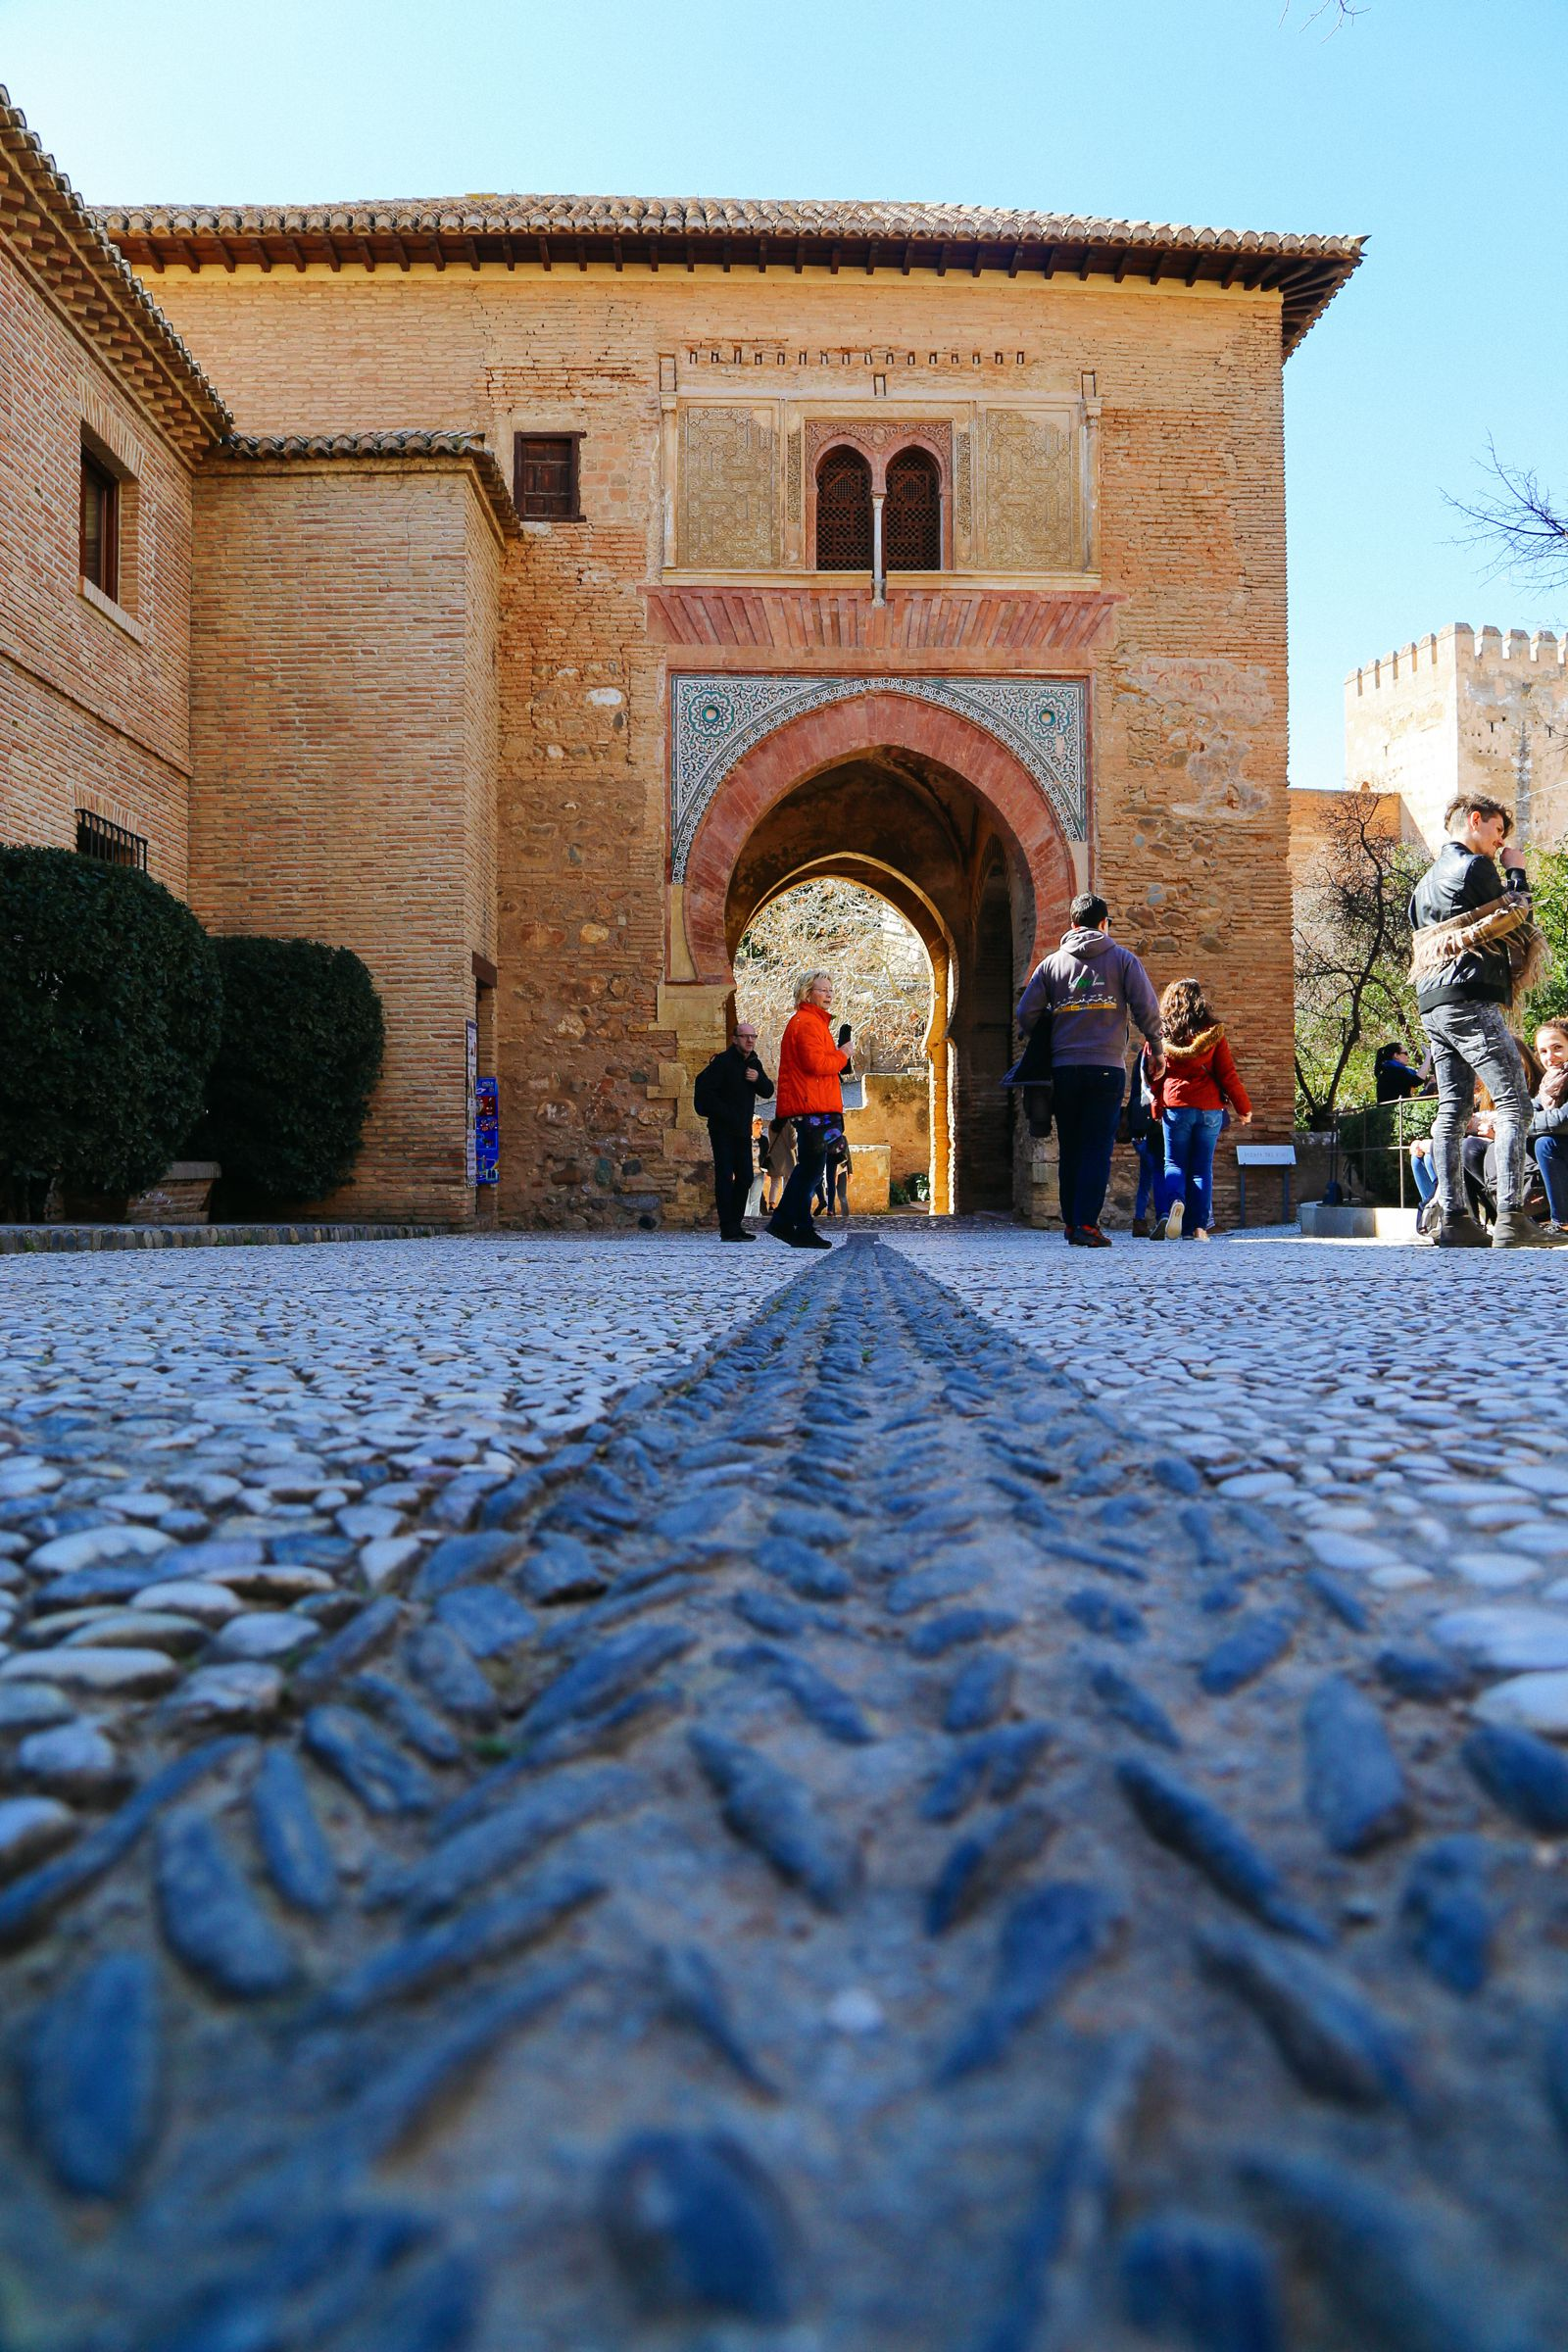 Postcards From Spain - Malaga, Ronda And The Alhambra (16)